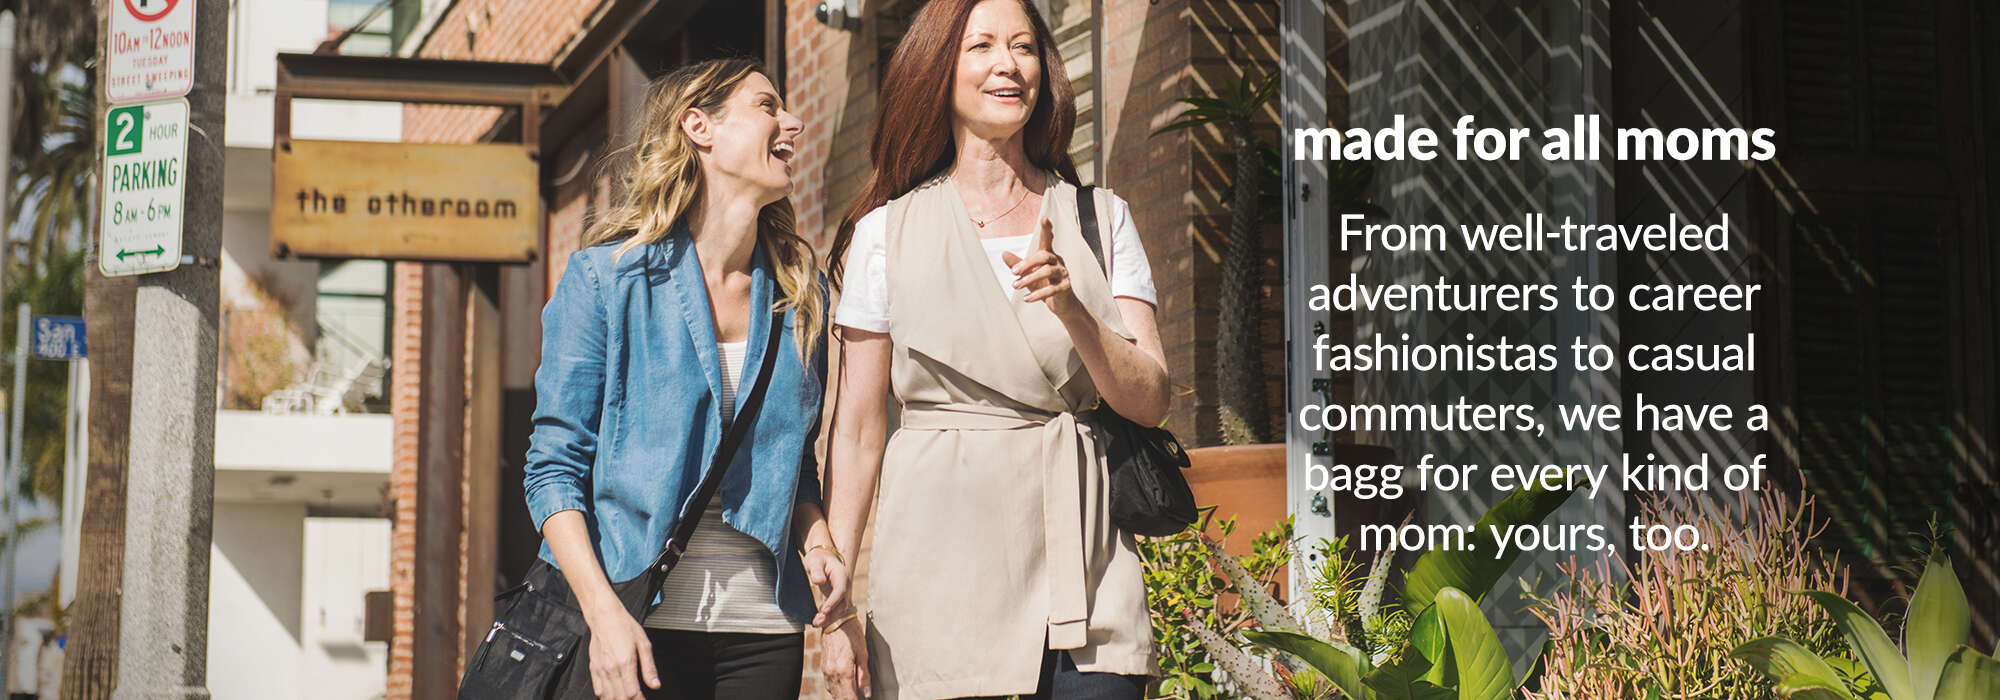 'made for all moms: from well-traveled adventures to career fashionistas to causal commuters